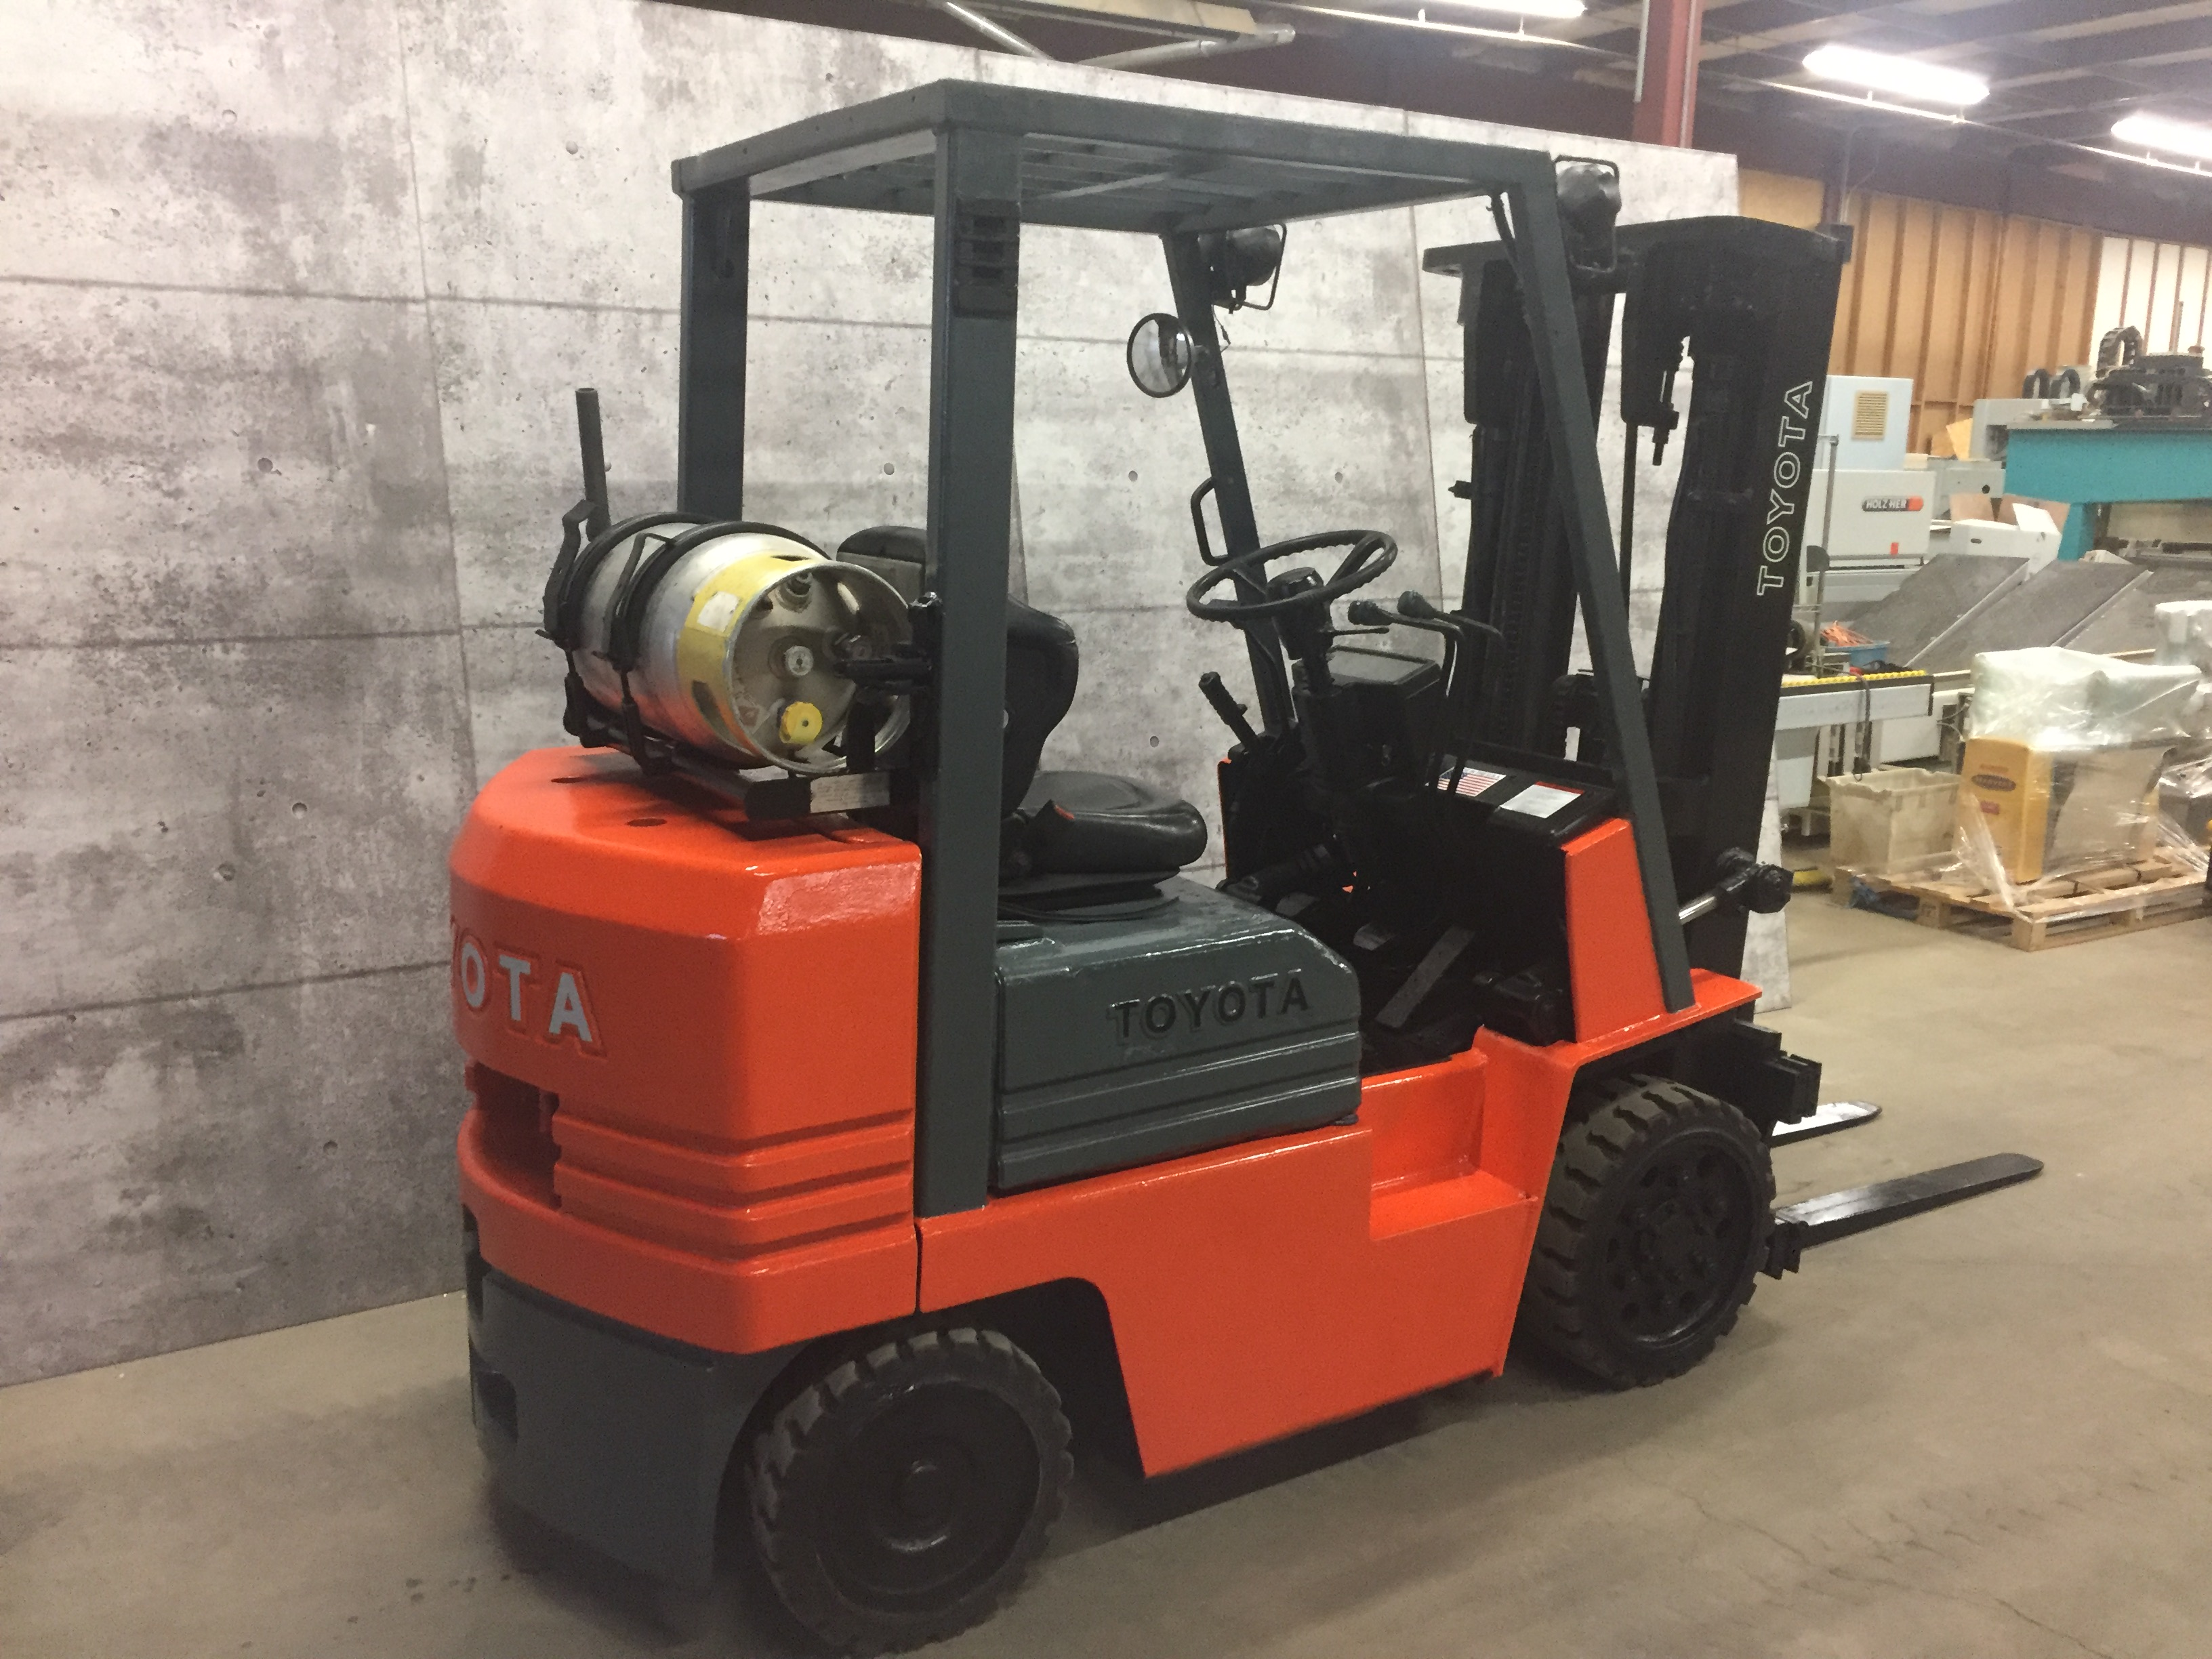 TOYOTA (NO. A 424992 TAKAHAMA) 5,000LBS LP PROPANE 3 STAGE SIDE SHIFT FORKLIFT (PROPANE TANK NOT - Image 3 of 5